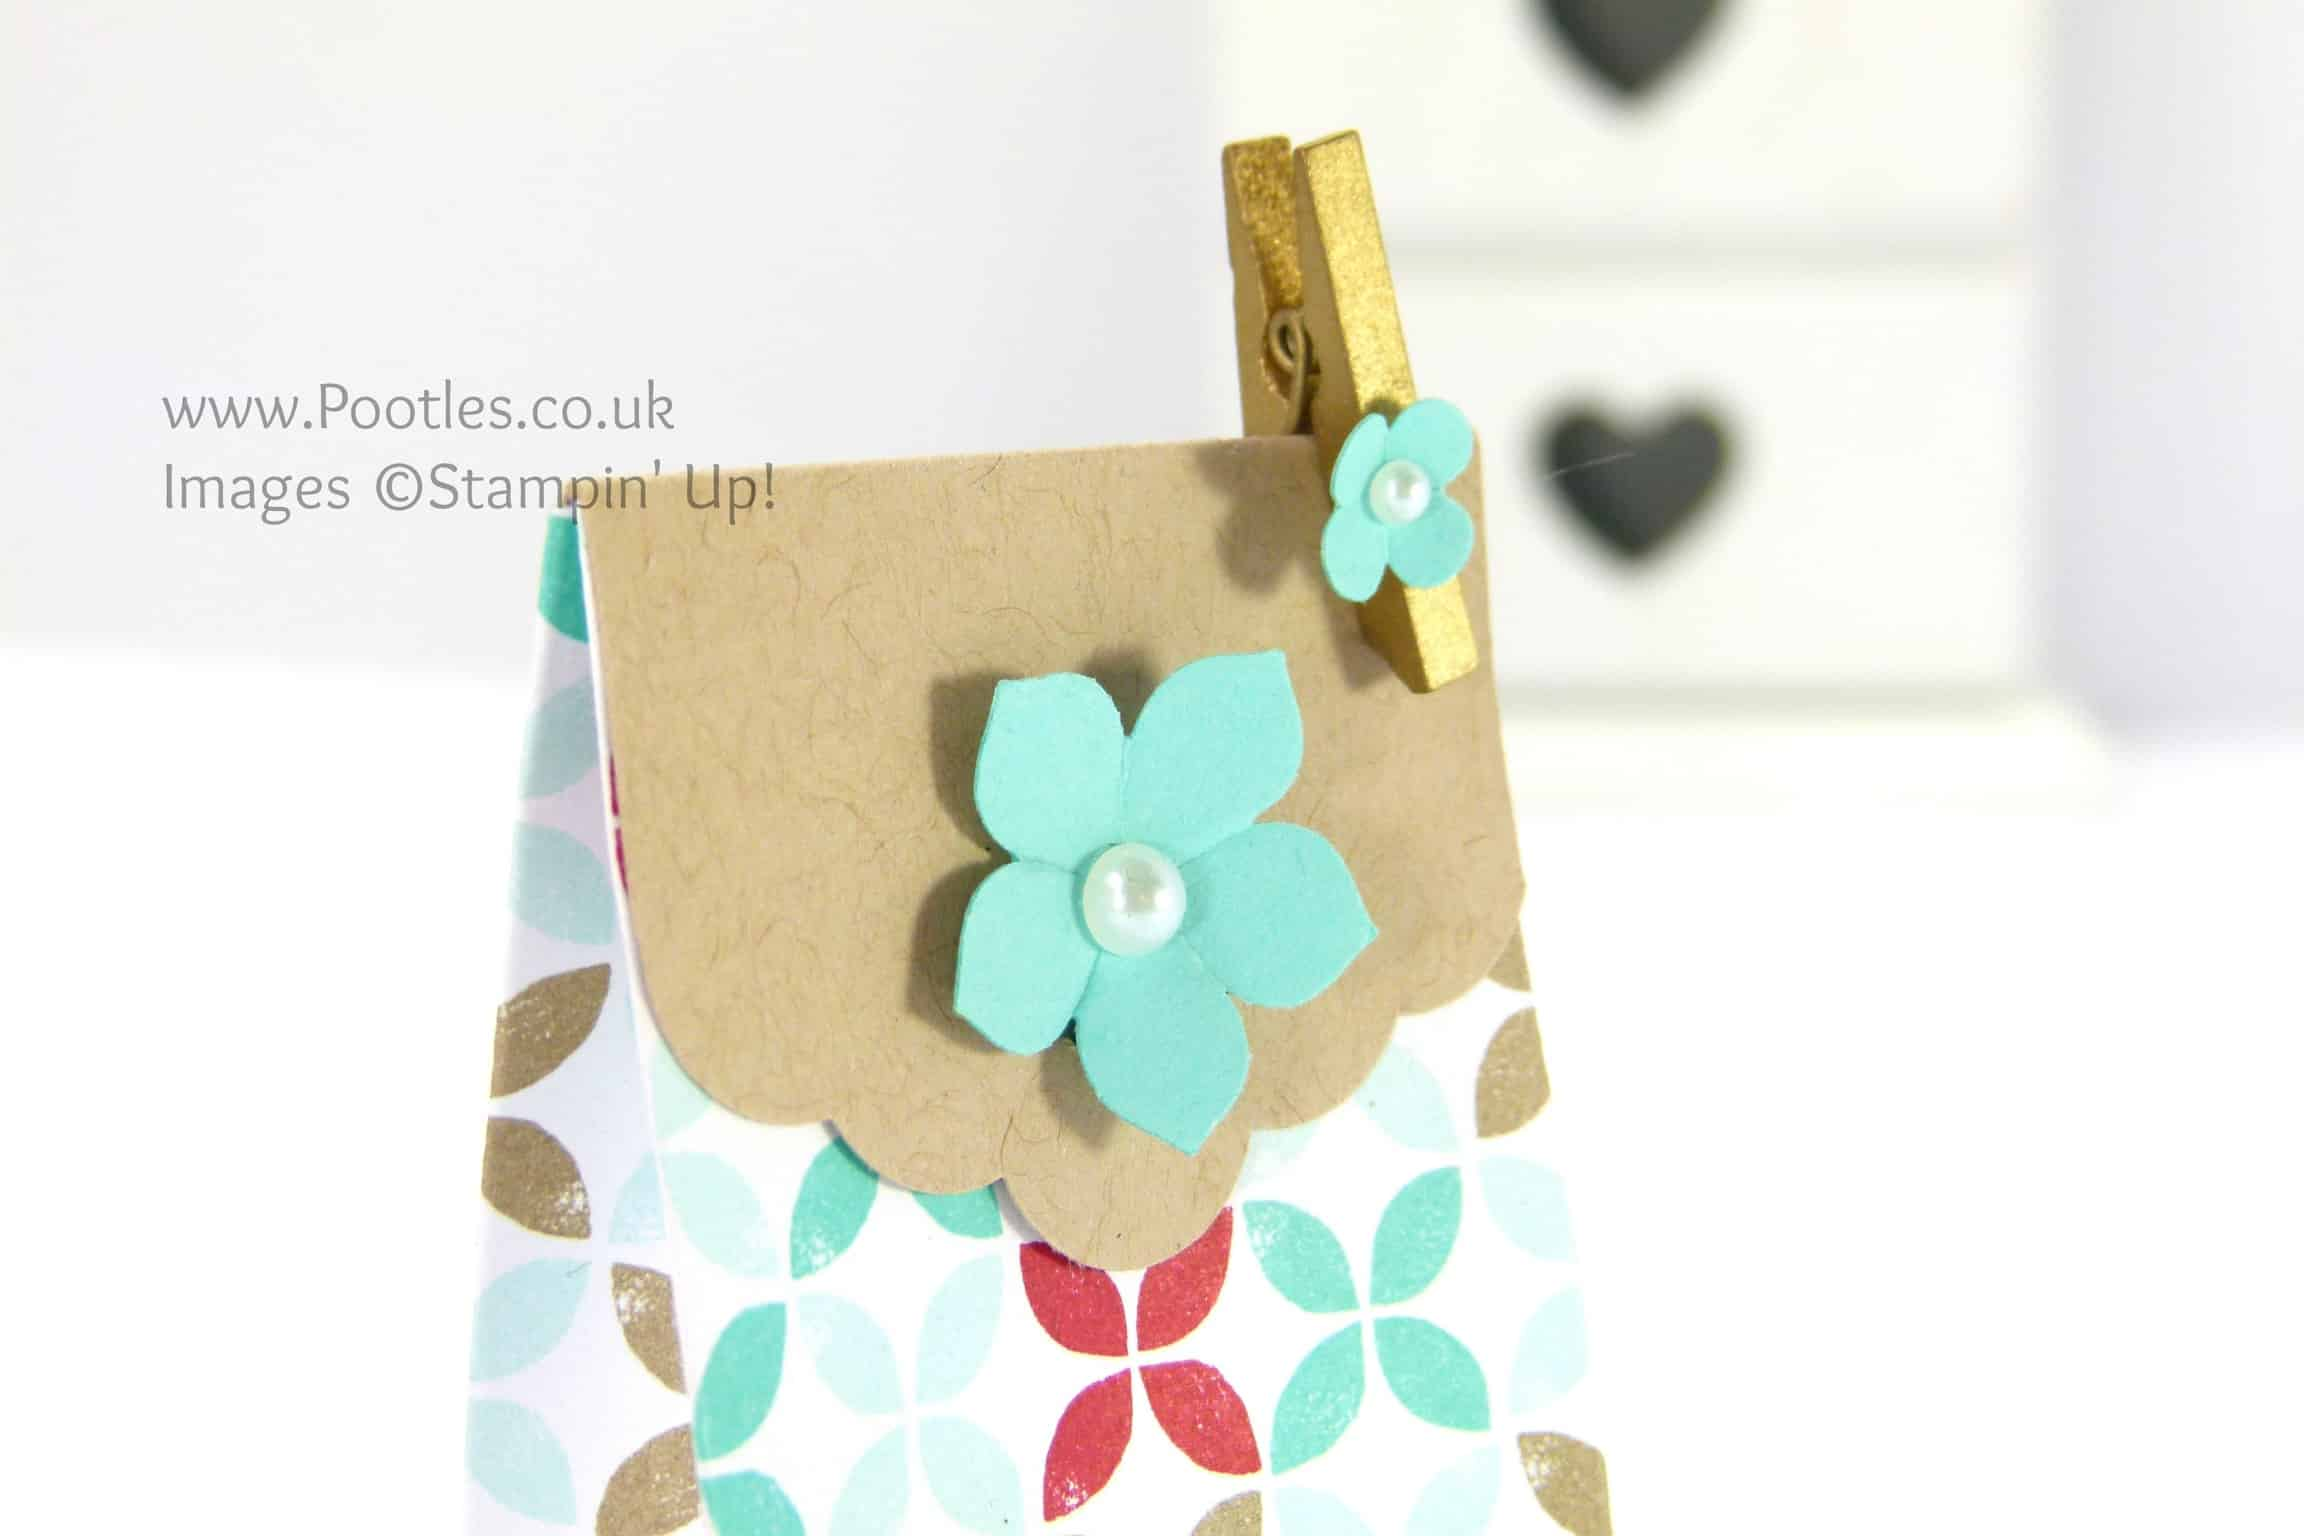 Fresh Prints DSP Bag Swaps for Stampin' Up! UK Regional Close Up